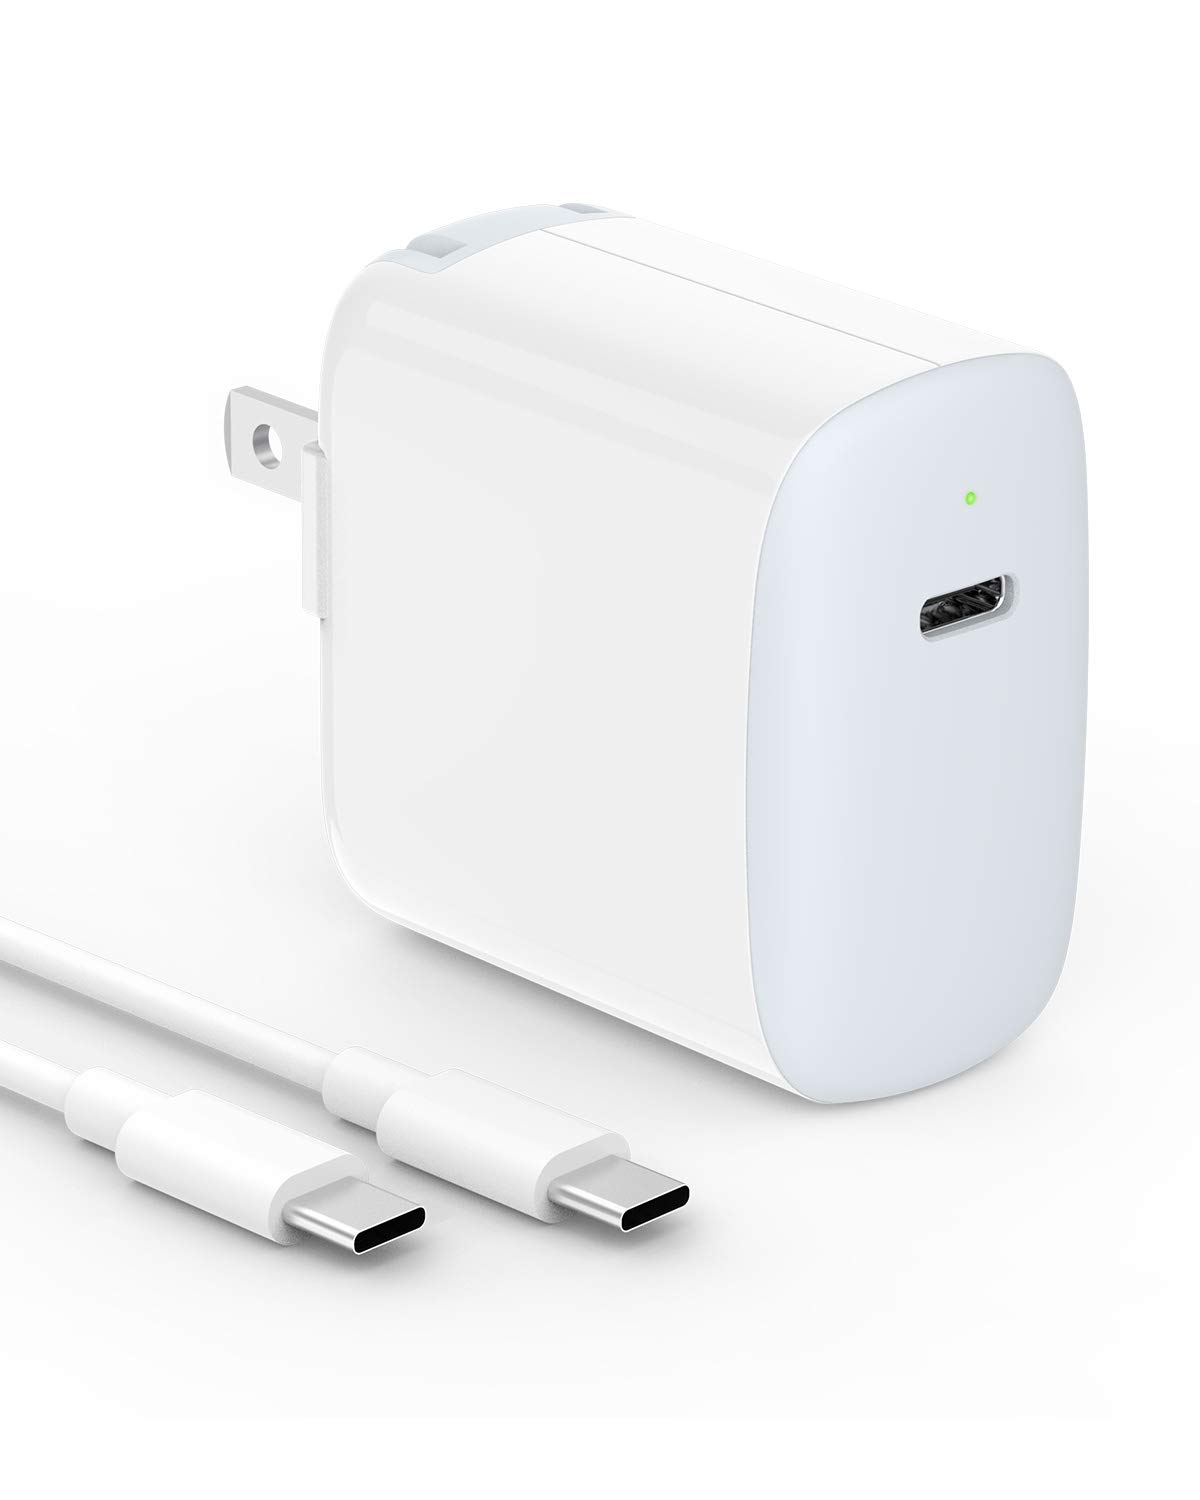 USB C Charger - 18W Fast Wall Charger for 2018 iPad Pro 12.9, 11, Google Pixel, Pixel 2, Pixel 3, Pixel XL, LG G7 G6 G5 V30, Galaxy S10, S9, S8, Moto Z, Foldable, LED Indicator, 6.6ft USB C to C Cable by SZPOWER